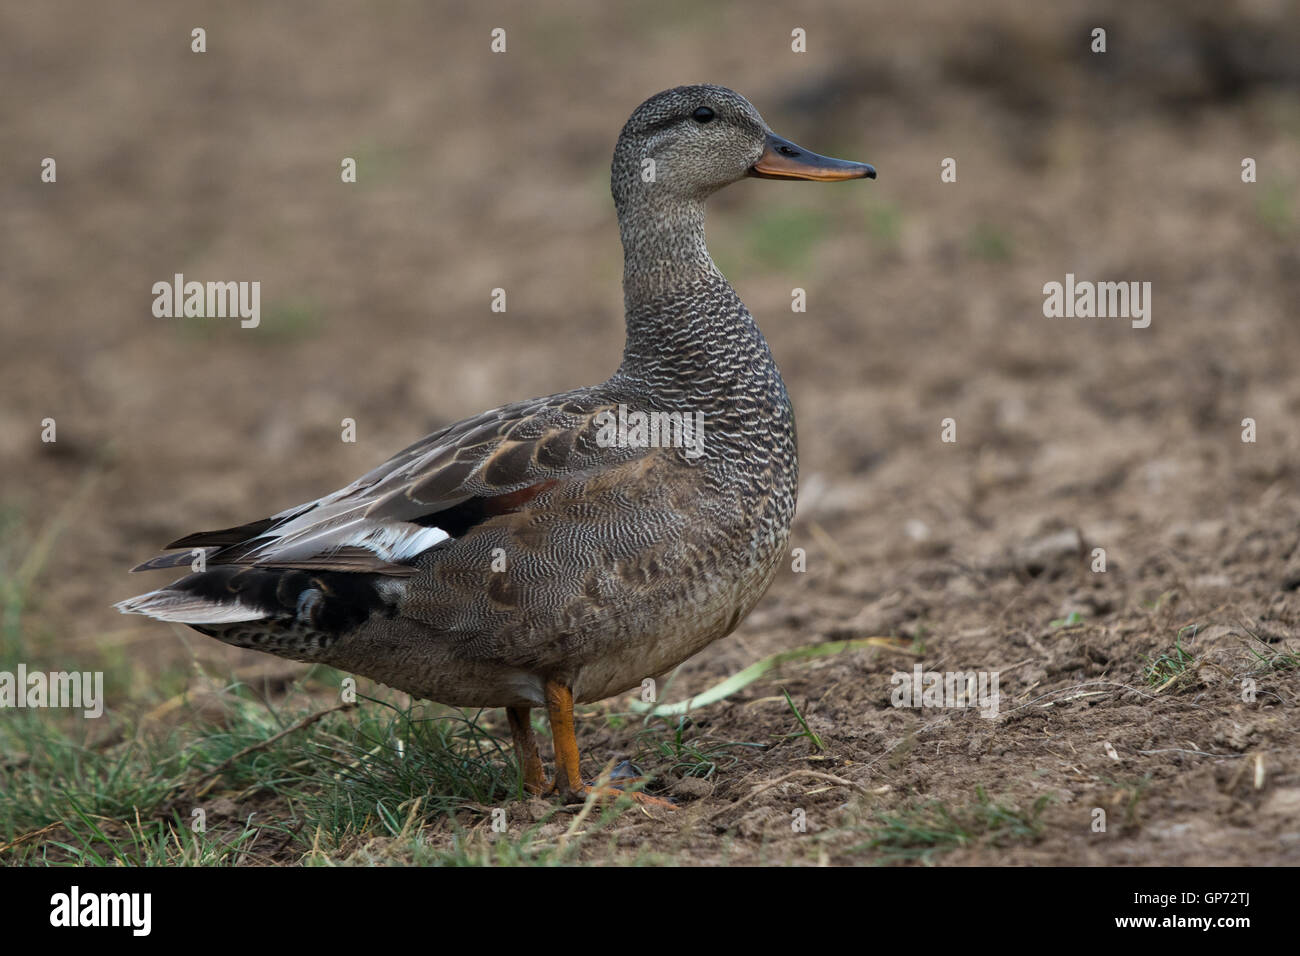 male Gadwall (Anas strepera) standing on bare earth - Stock Image